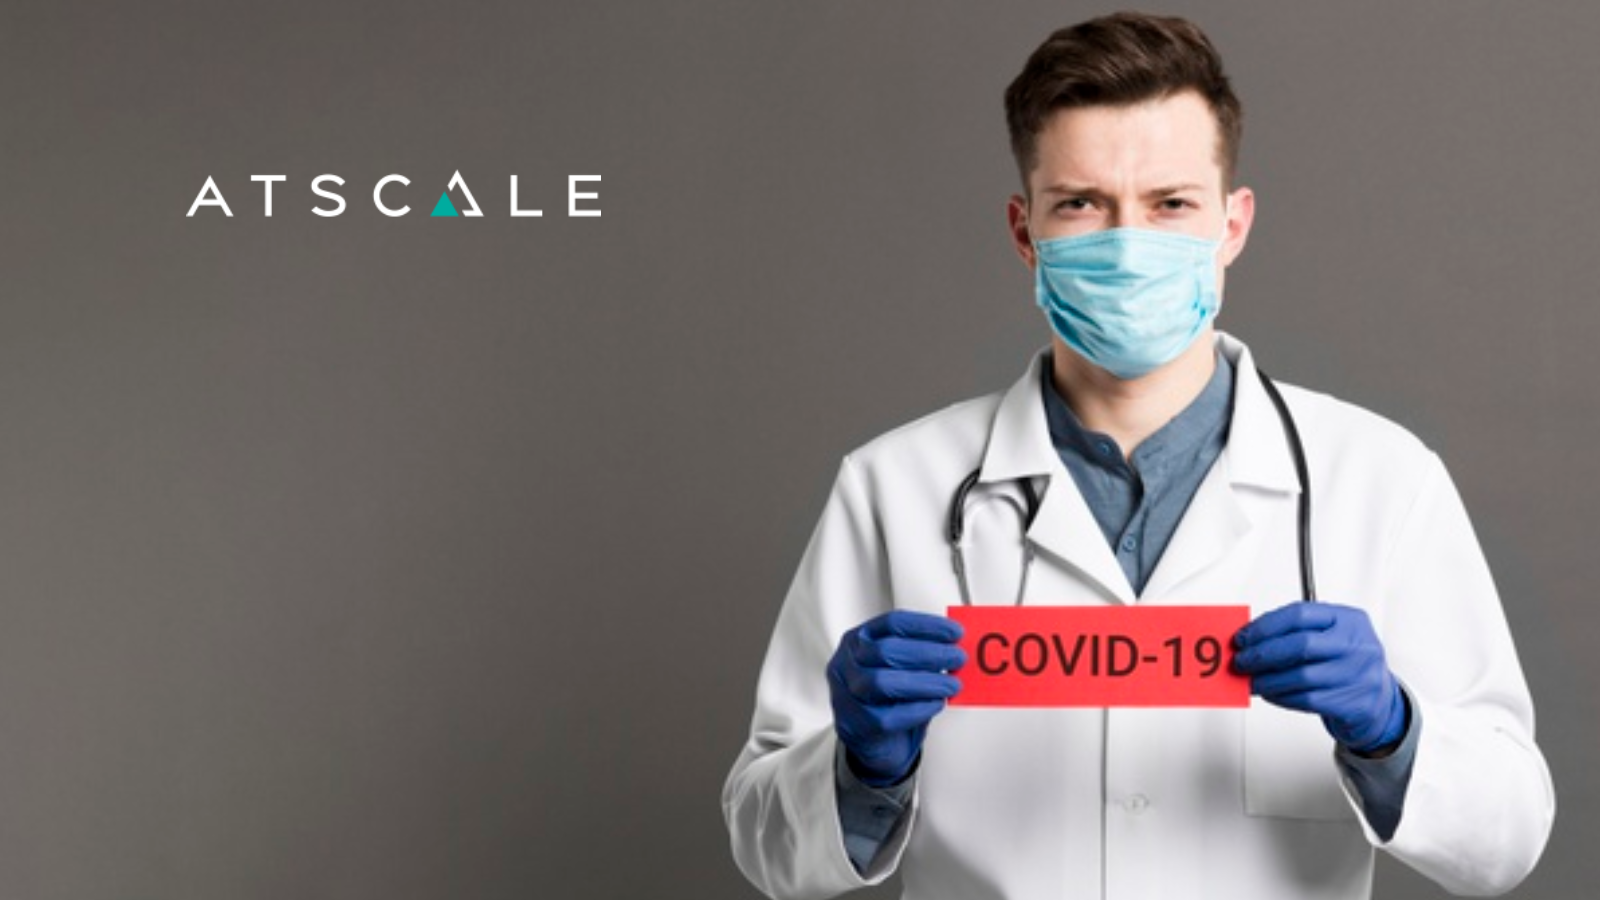 AtScale Enables Global Community to Make Better, Faster Decisions with COVID-19 Data